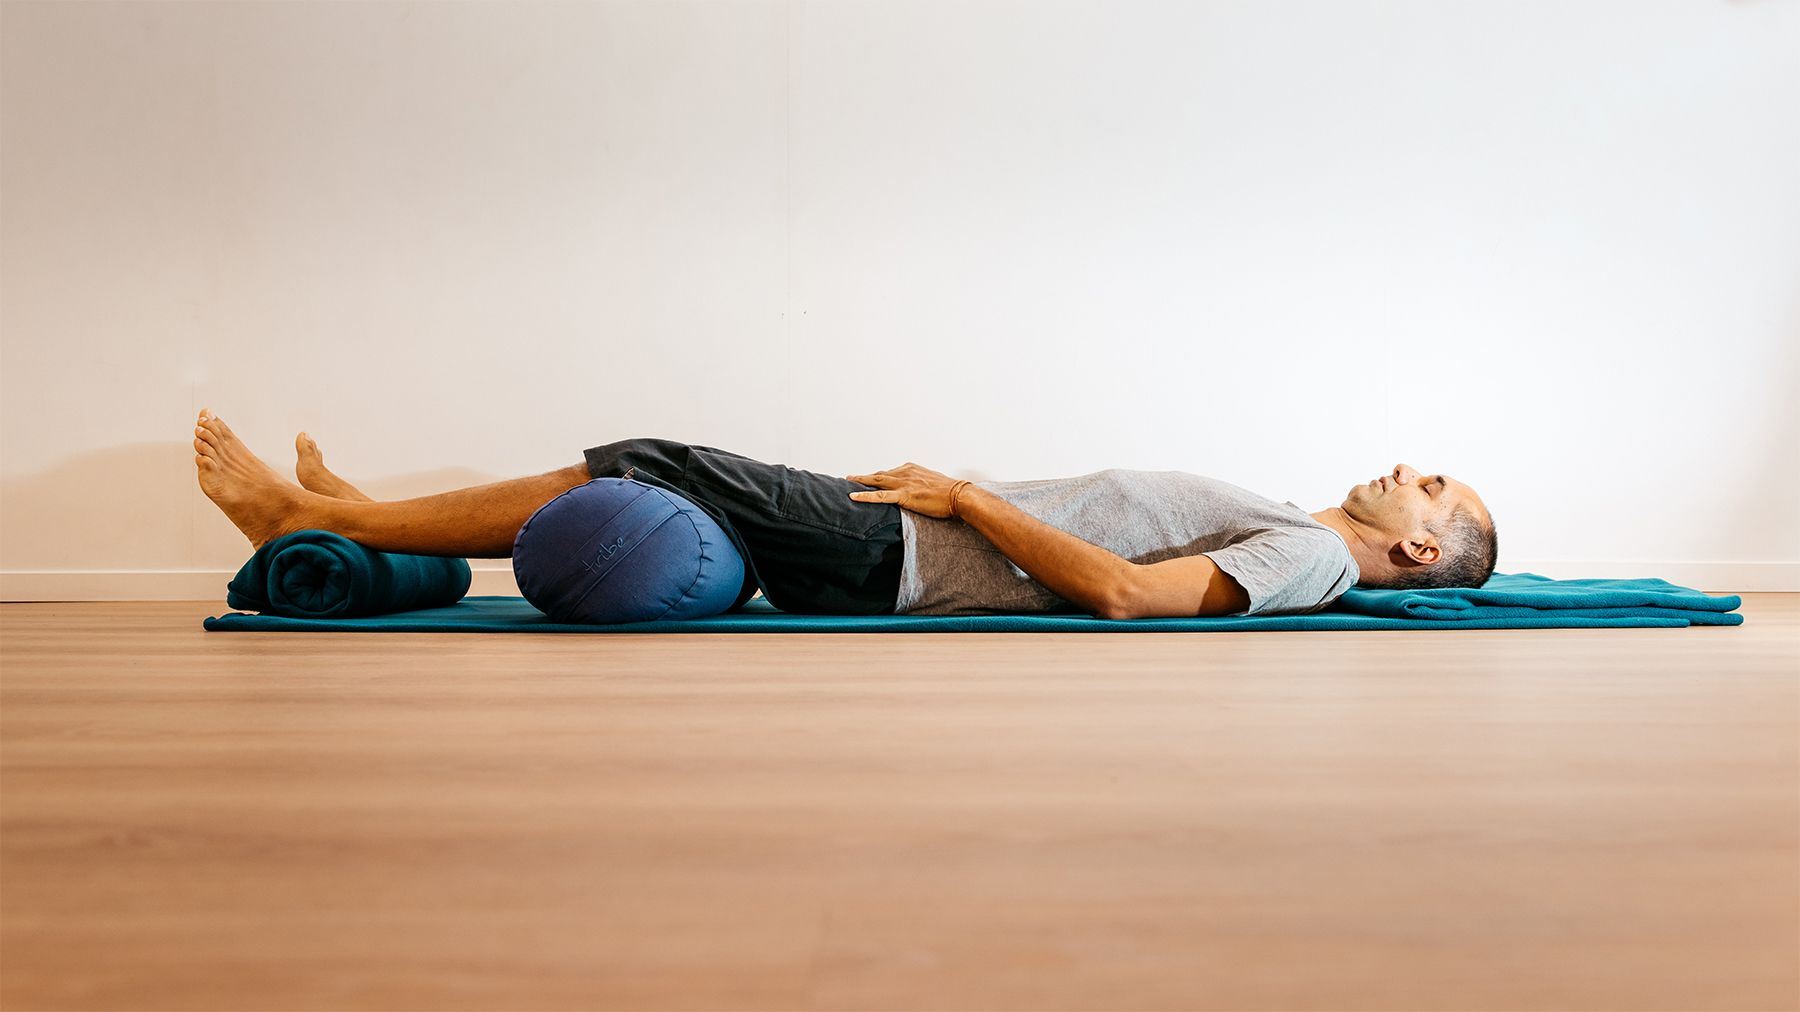 Restorative Yoga with Neal Ghoshal - Savasana, Relaxation Pose